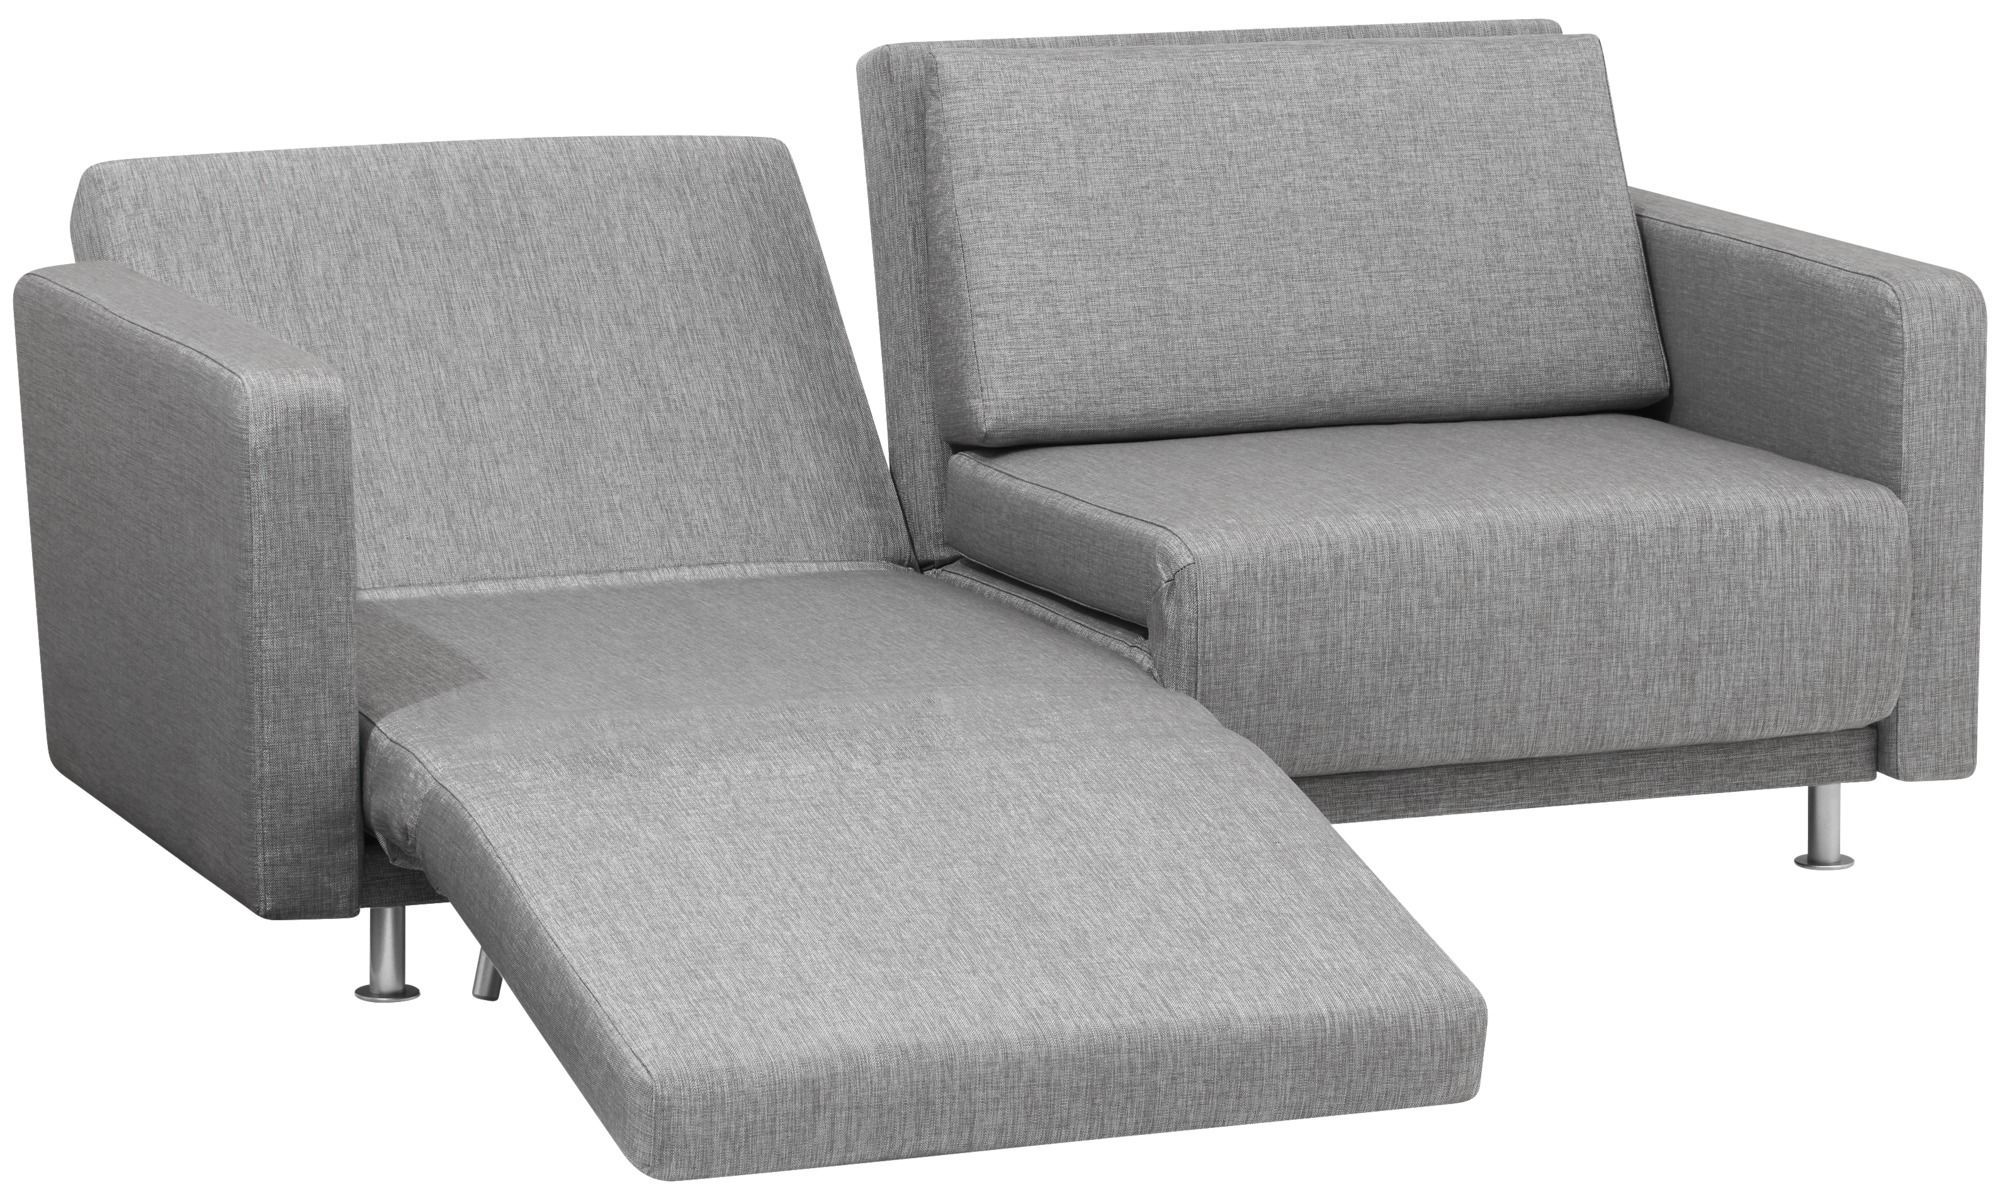 Sofa Beds Melo 2 Sofa With Reclining And Sleeping Function Gray Fabric Sofa Mit Schlaffunktion Kleines Schlafsofa 2er Sofa